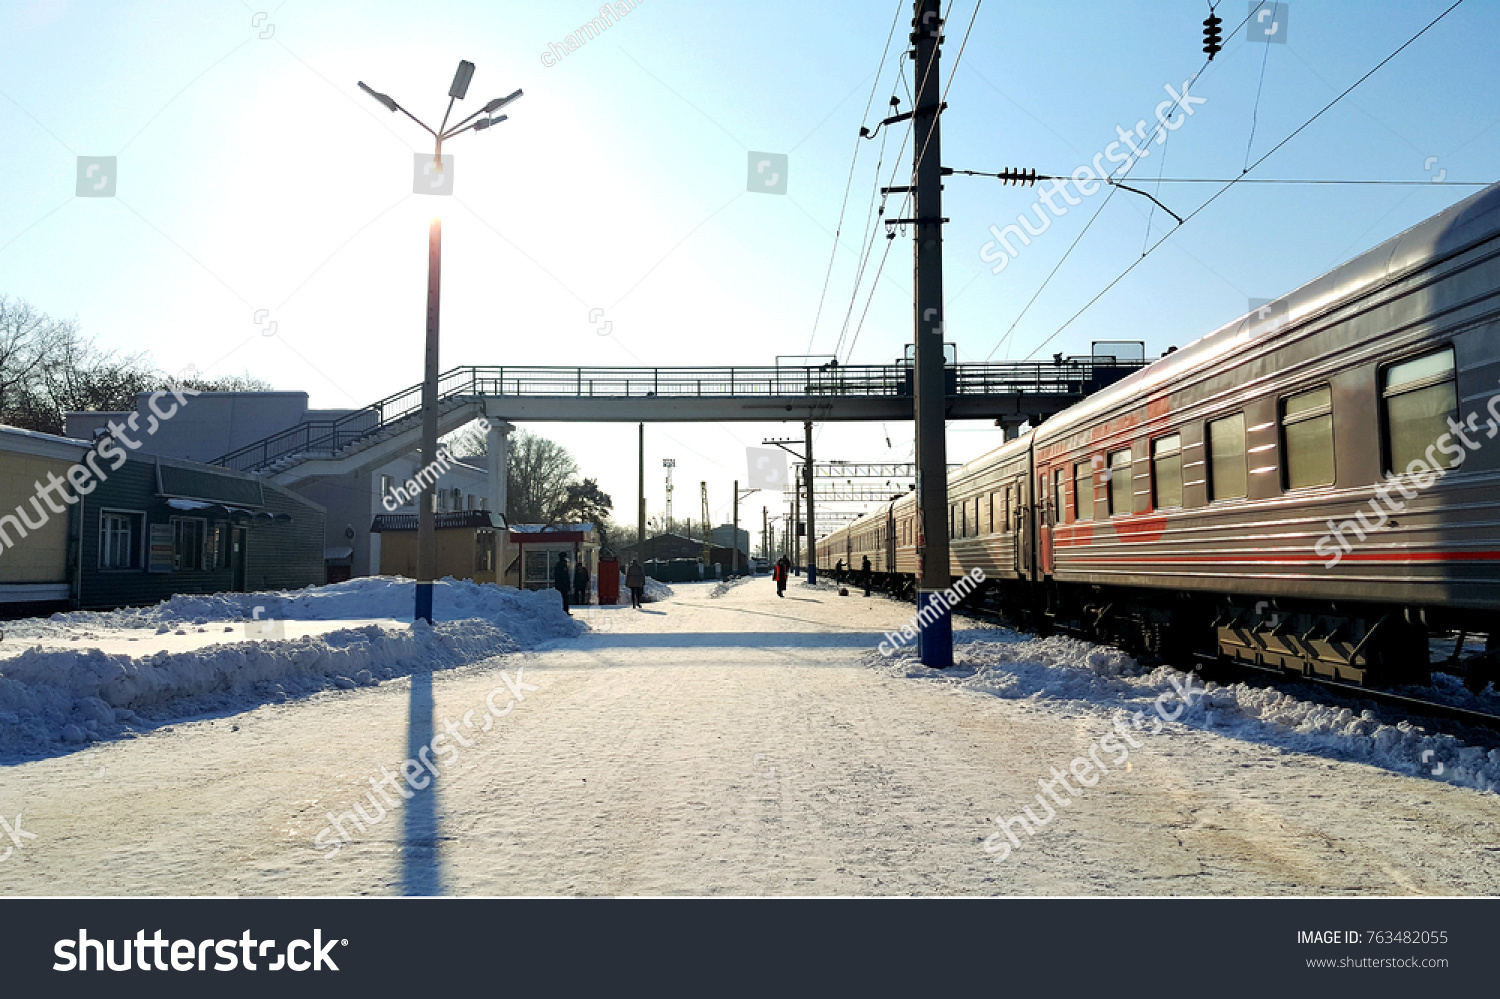 Forum on this topic: The Trans-Siberian Railway Might Soon Take Passengers , the-trans-siberian-railway-might-soon-take-passengers/